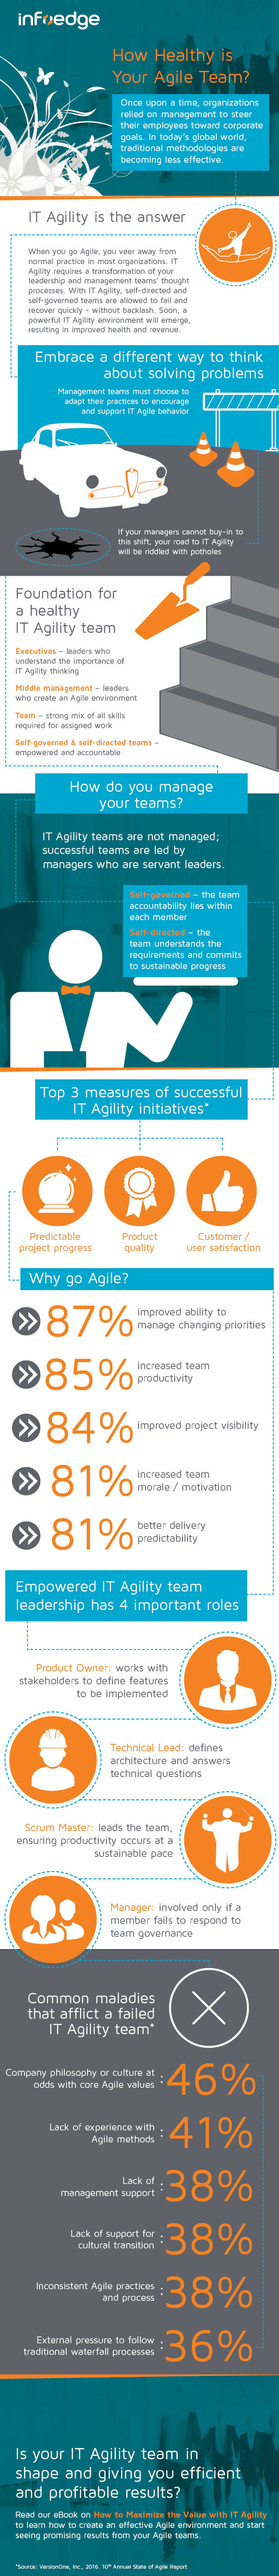 infographic breaking down agility, infoedge LLC management consulting information technology